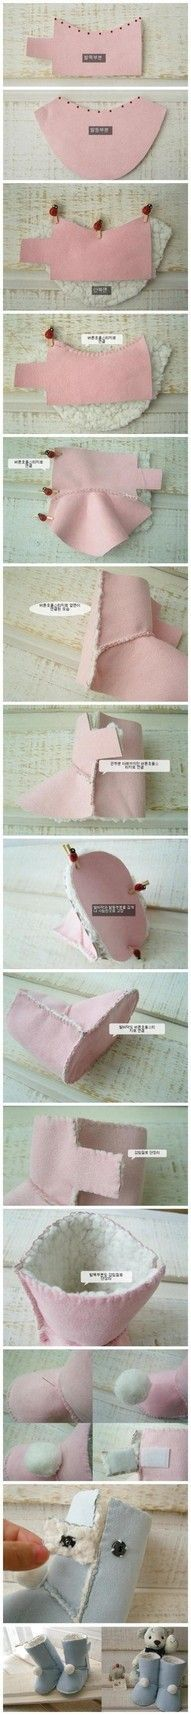 Make your own doll boots like UGGS--cute!                                                                                                                                                                                 Plus                                                                                                                                                                                 Plus